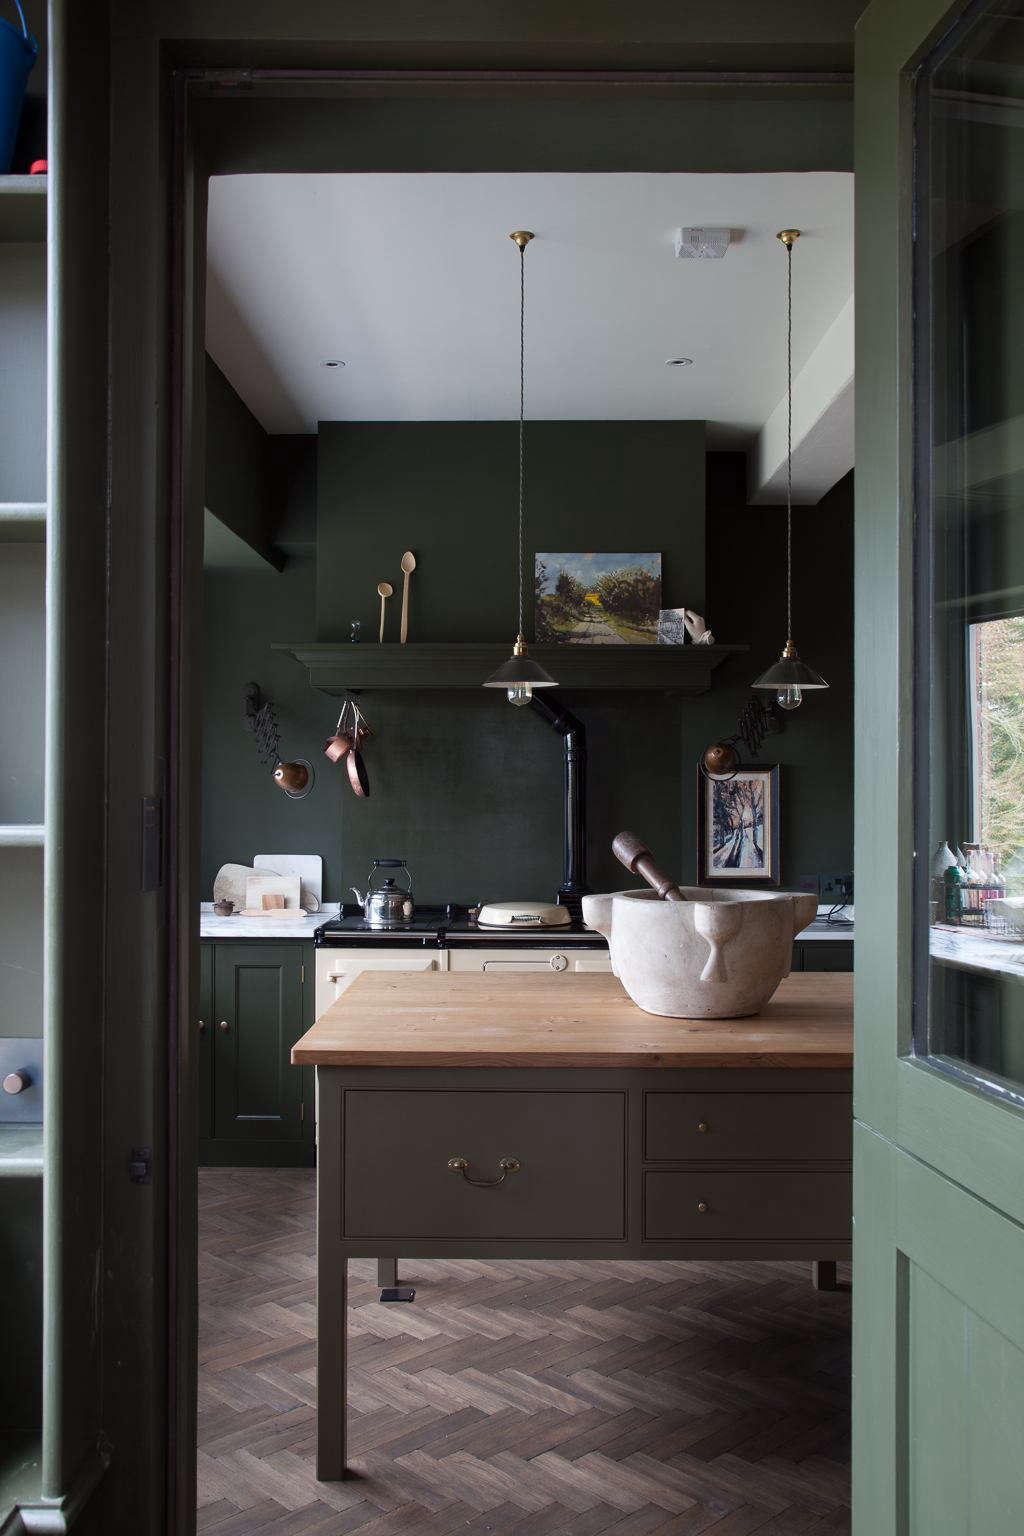 The canopy above the range conceals the vent hood and provides a subtle place for displaying art (the homeowner herself is an artist). The light shades are from Baileysin Ross-on-Wye. An oversize mortar and pestle makes a bold statement on the worktable.